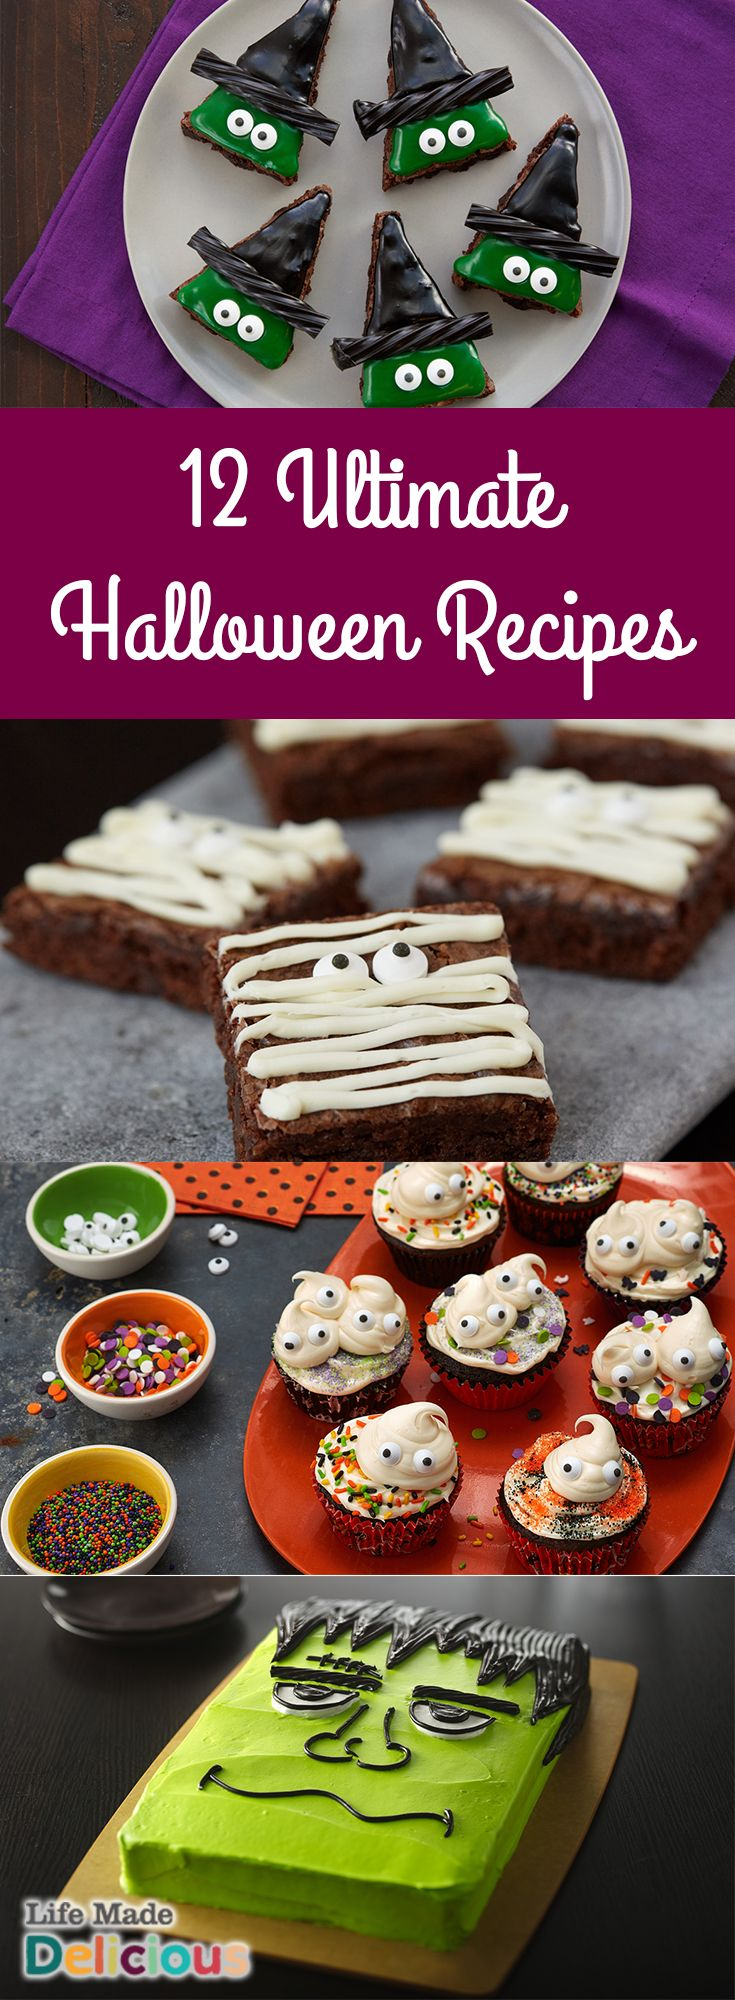 12 Top Halloween Recipes for the ultimate Halloween party.